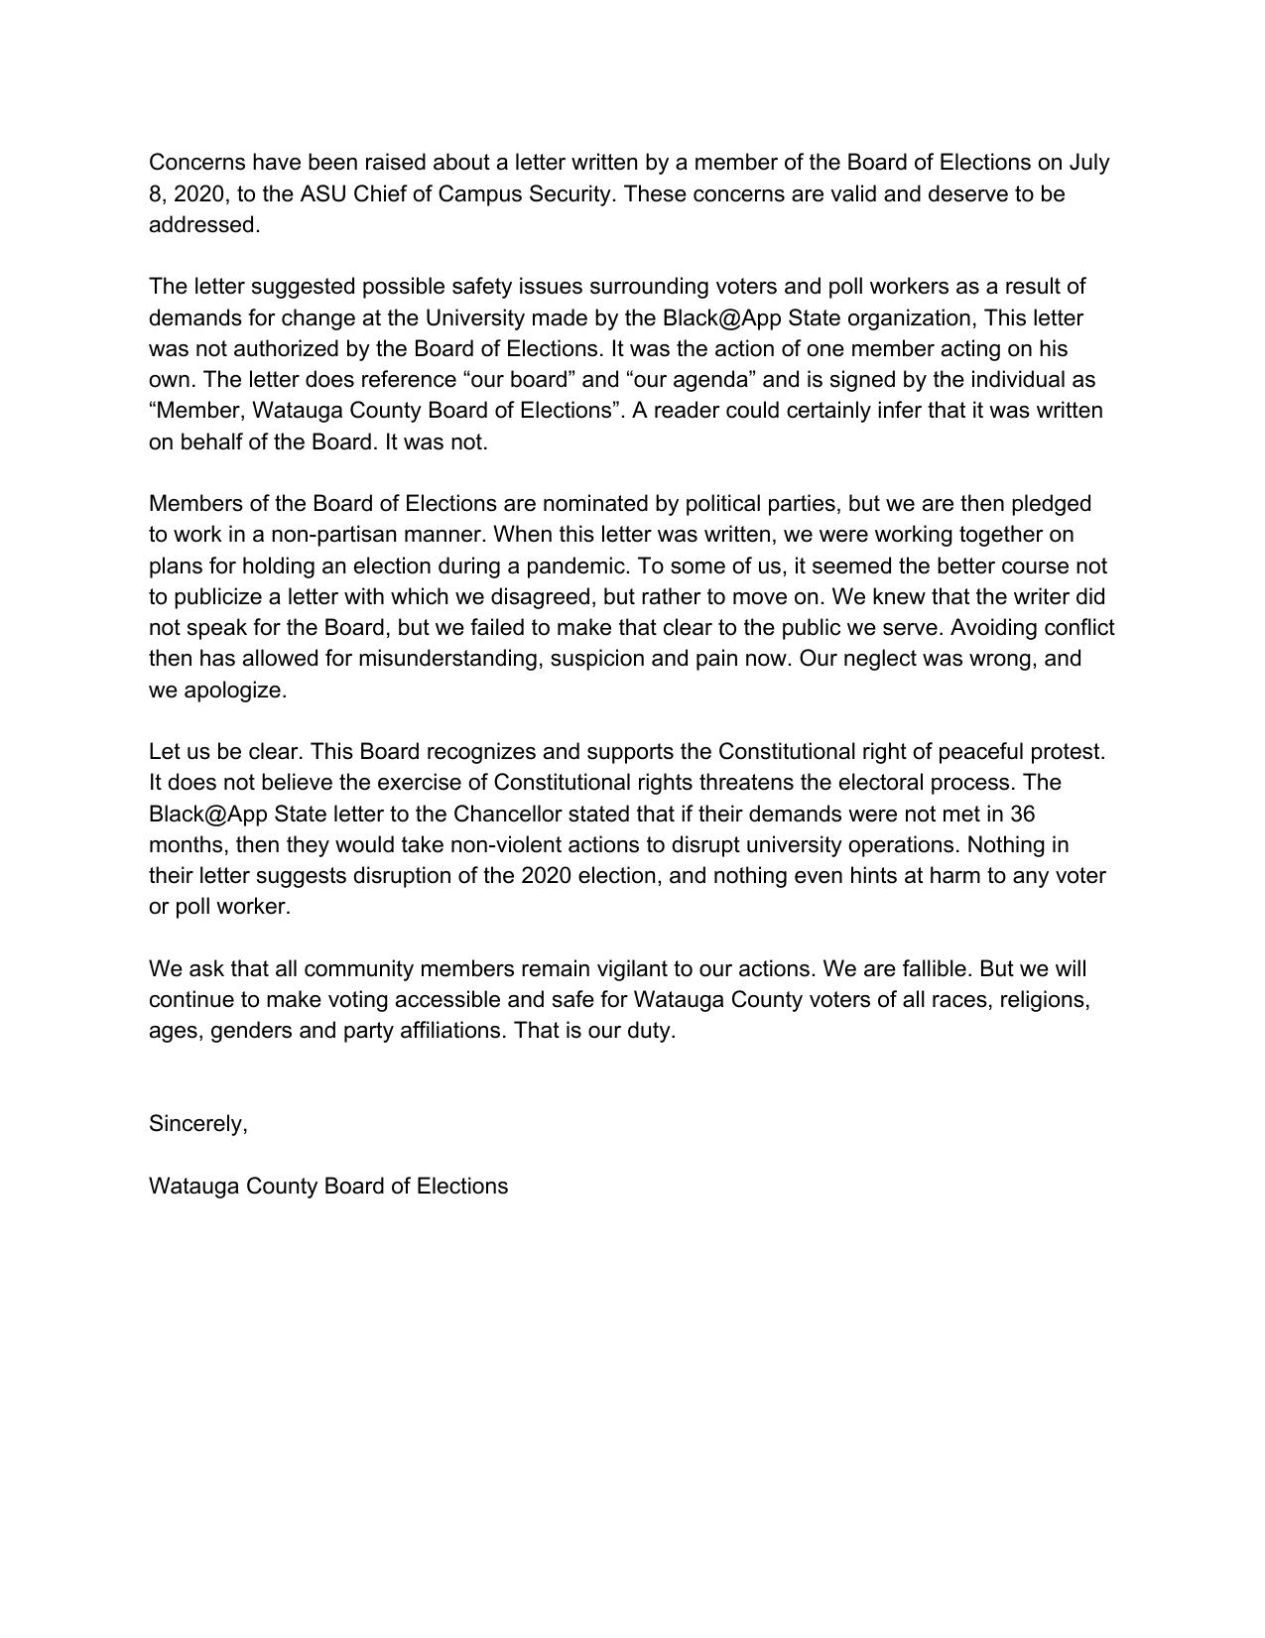 Board of Elections Sept. 8 letter